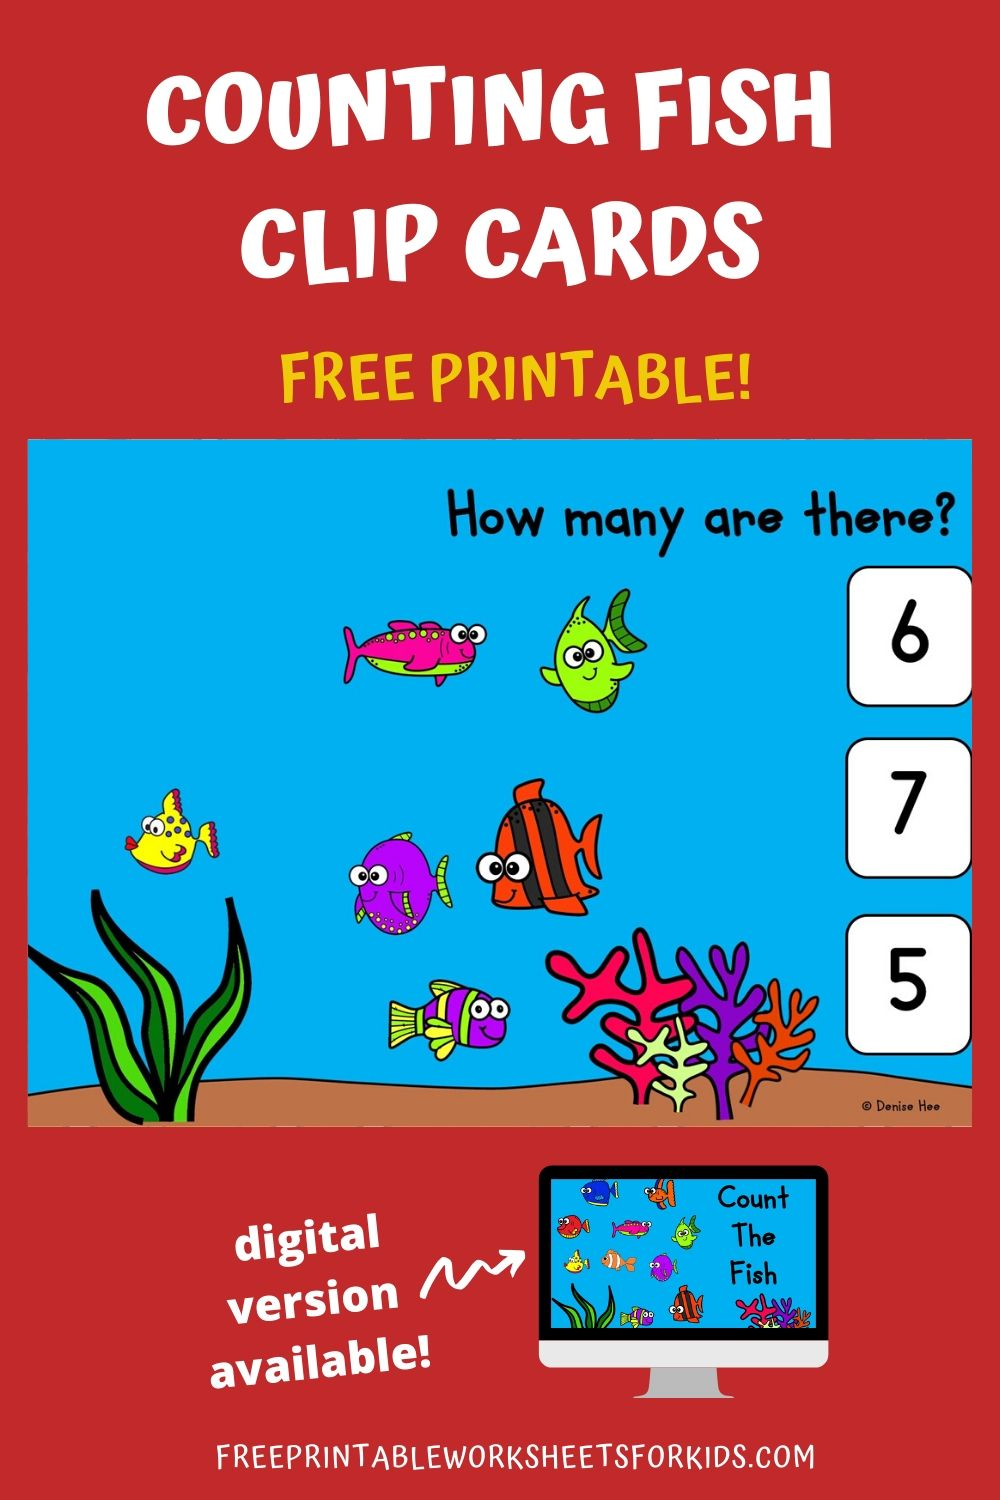 Count The Fish 1-10 | Free Printable Worksheets For Kids | Dive into the ocean and count how many colorful fish you can see! Kids will love clipping the correct answer and they will be so good at counting to 10 by the end of this game. This set of clip cards is perfect for summertime.